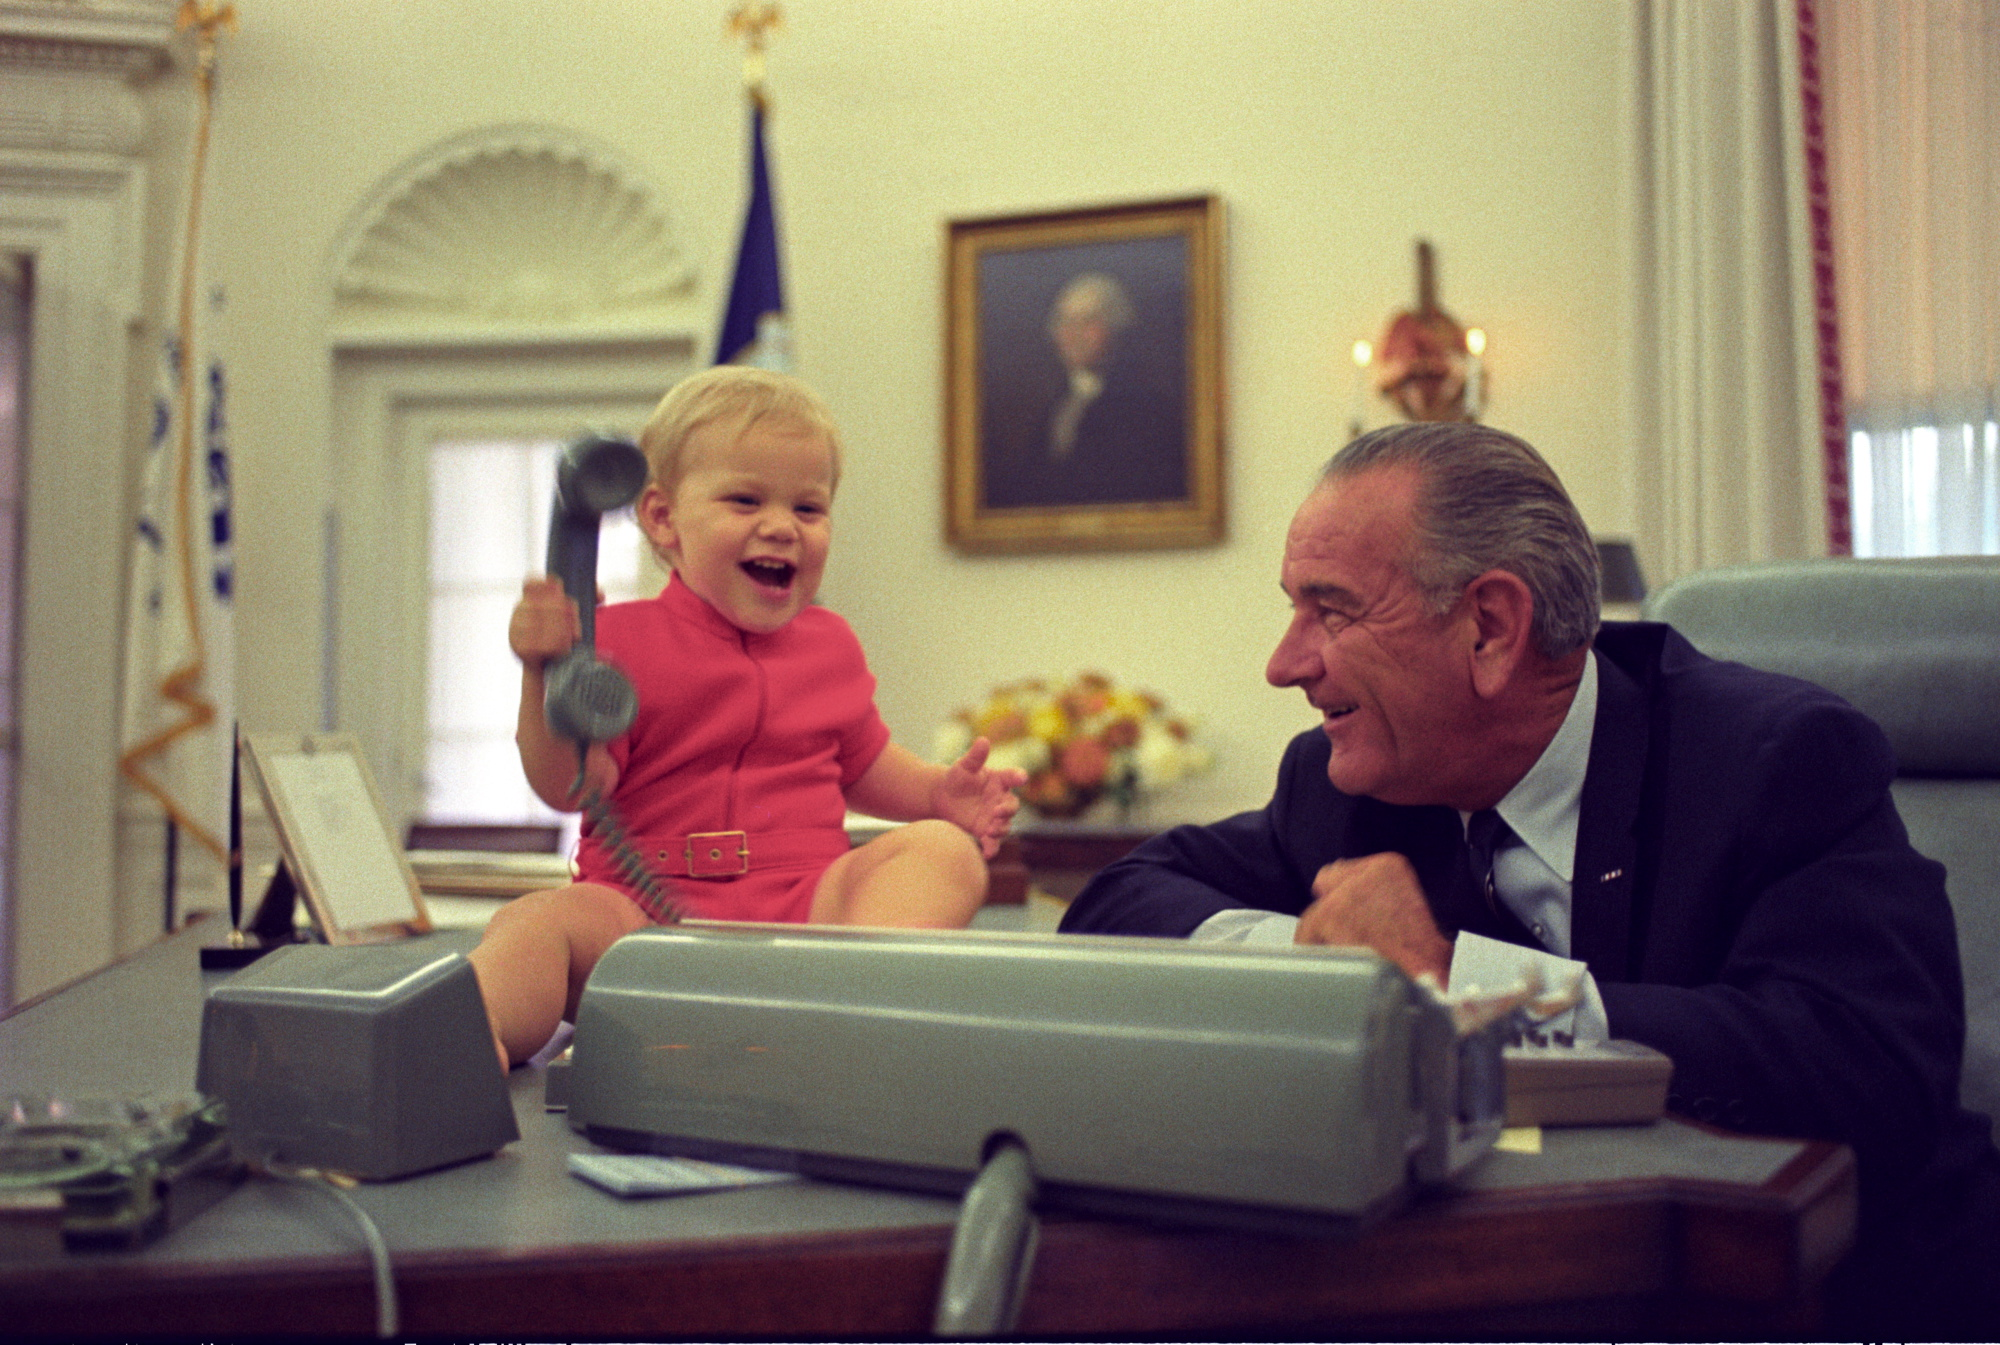 lbj oval office. File:LBJ And Grandson Oval Office.jpg Lbj Office